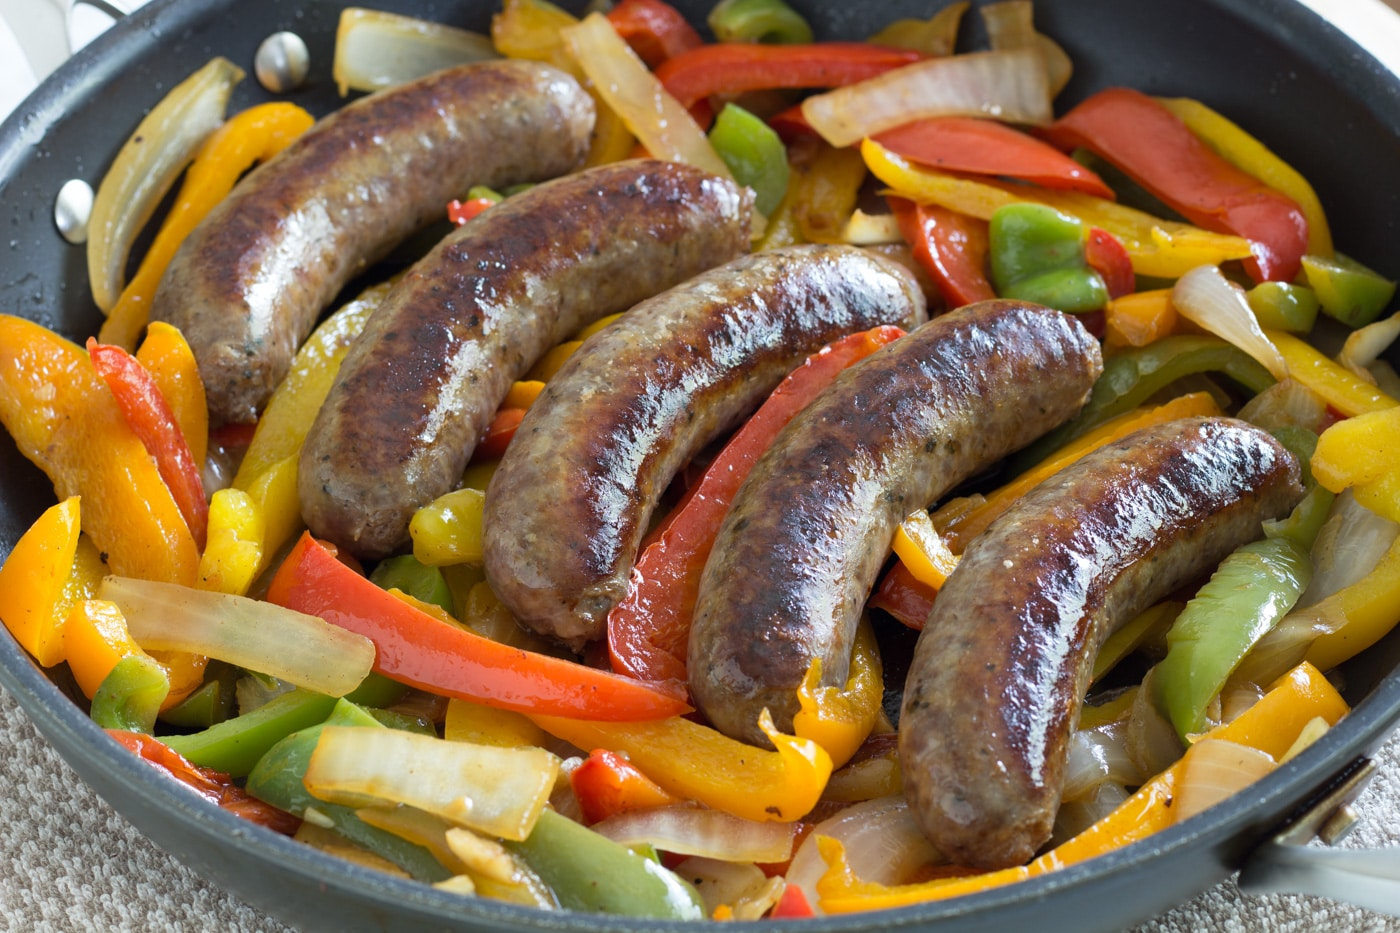 Seared Italian sausage ontop of bells peppers and onions in a pan.